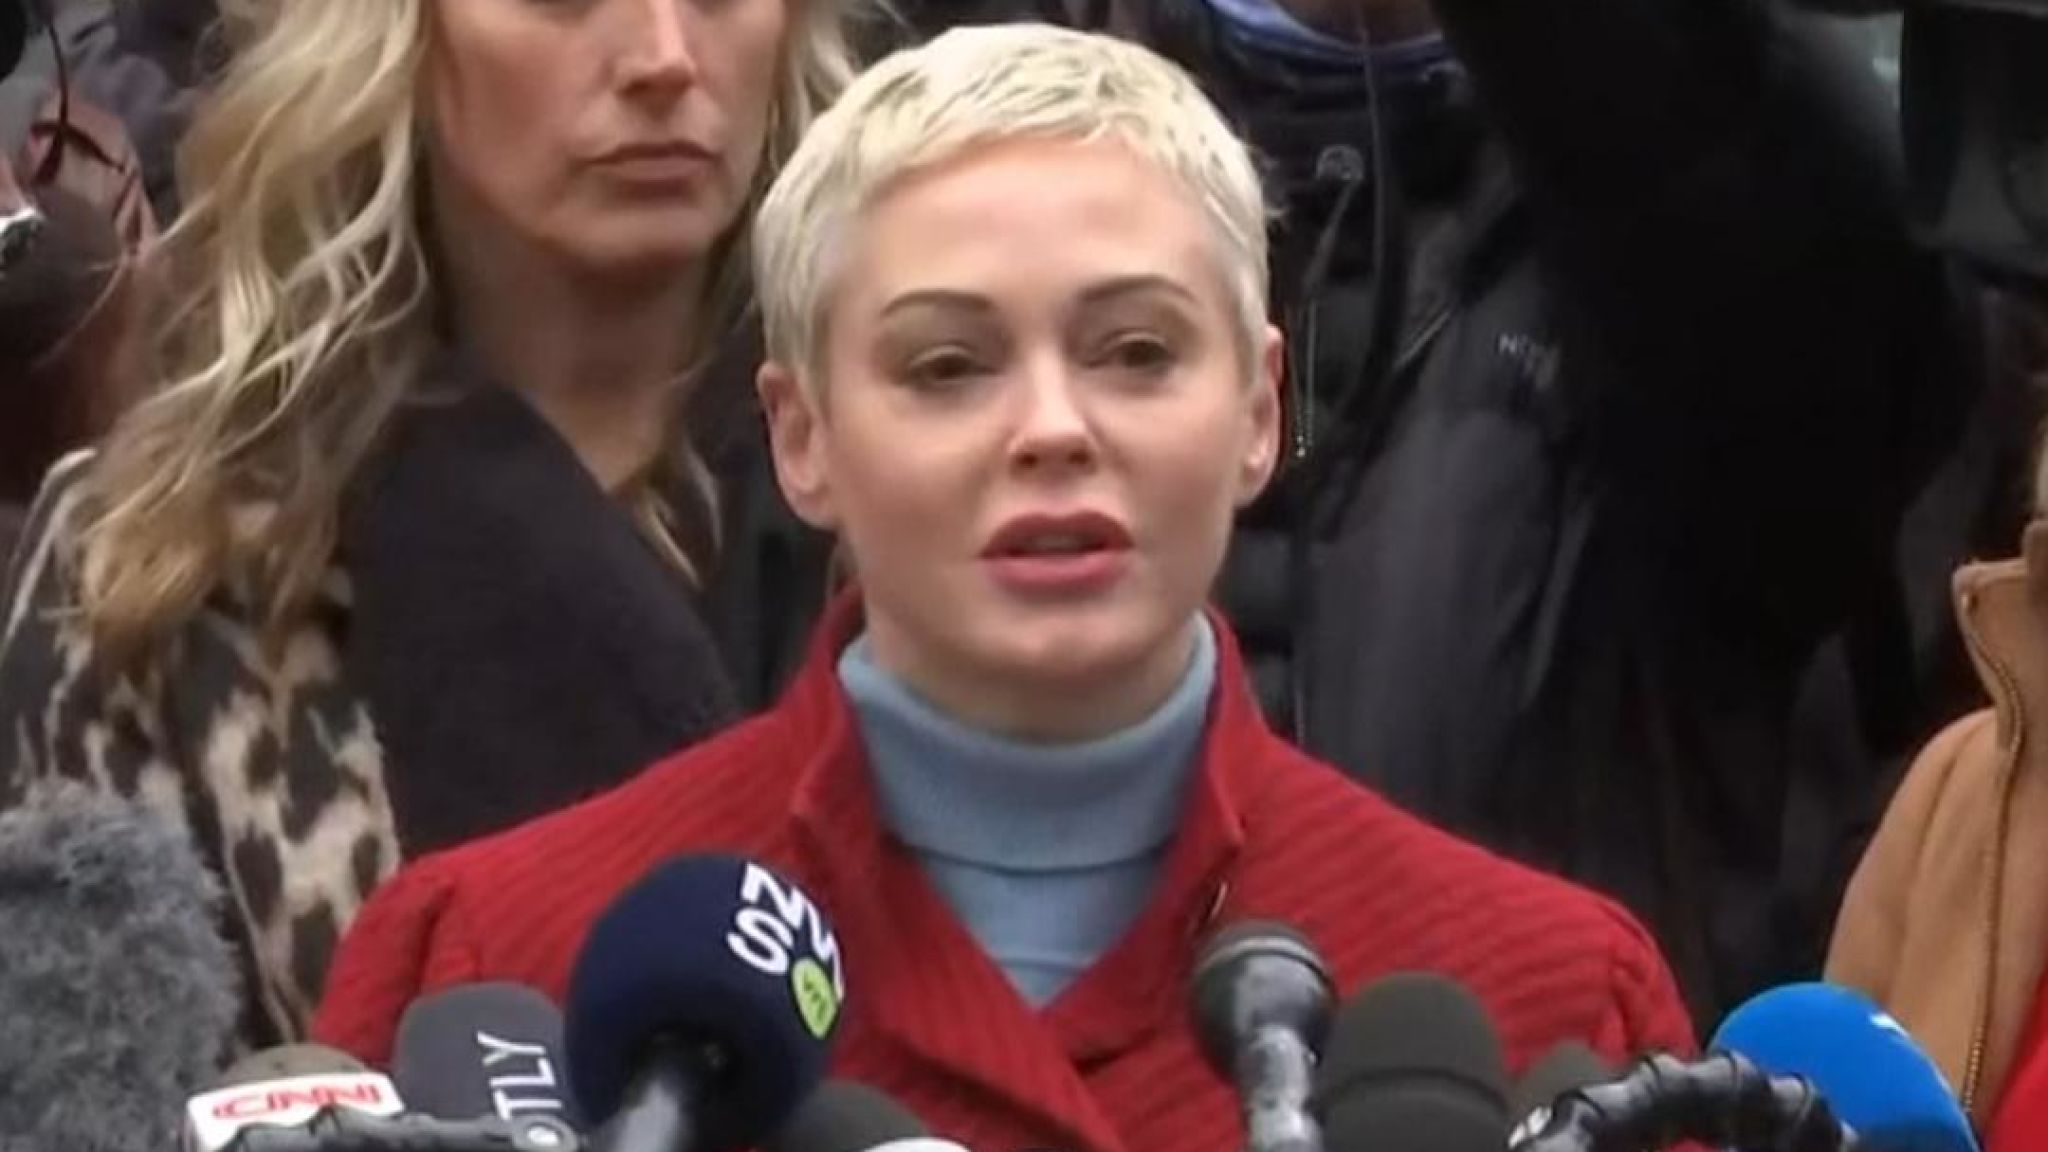 Rose McGowan delivered an open message to Harvey Weinstein outside court